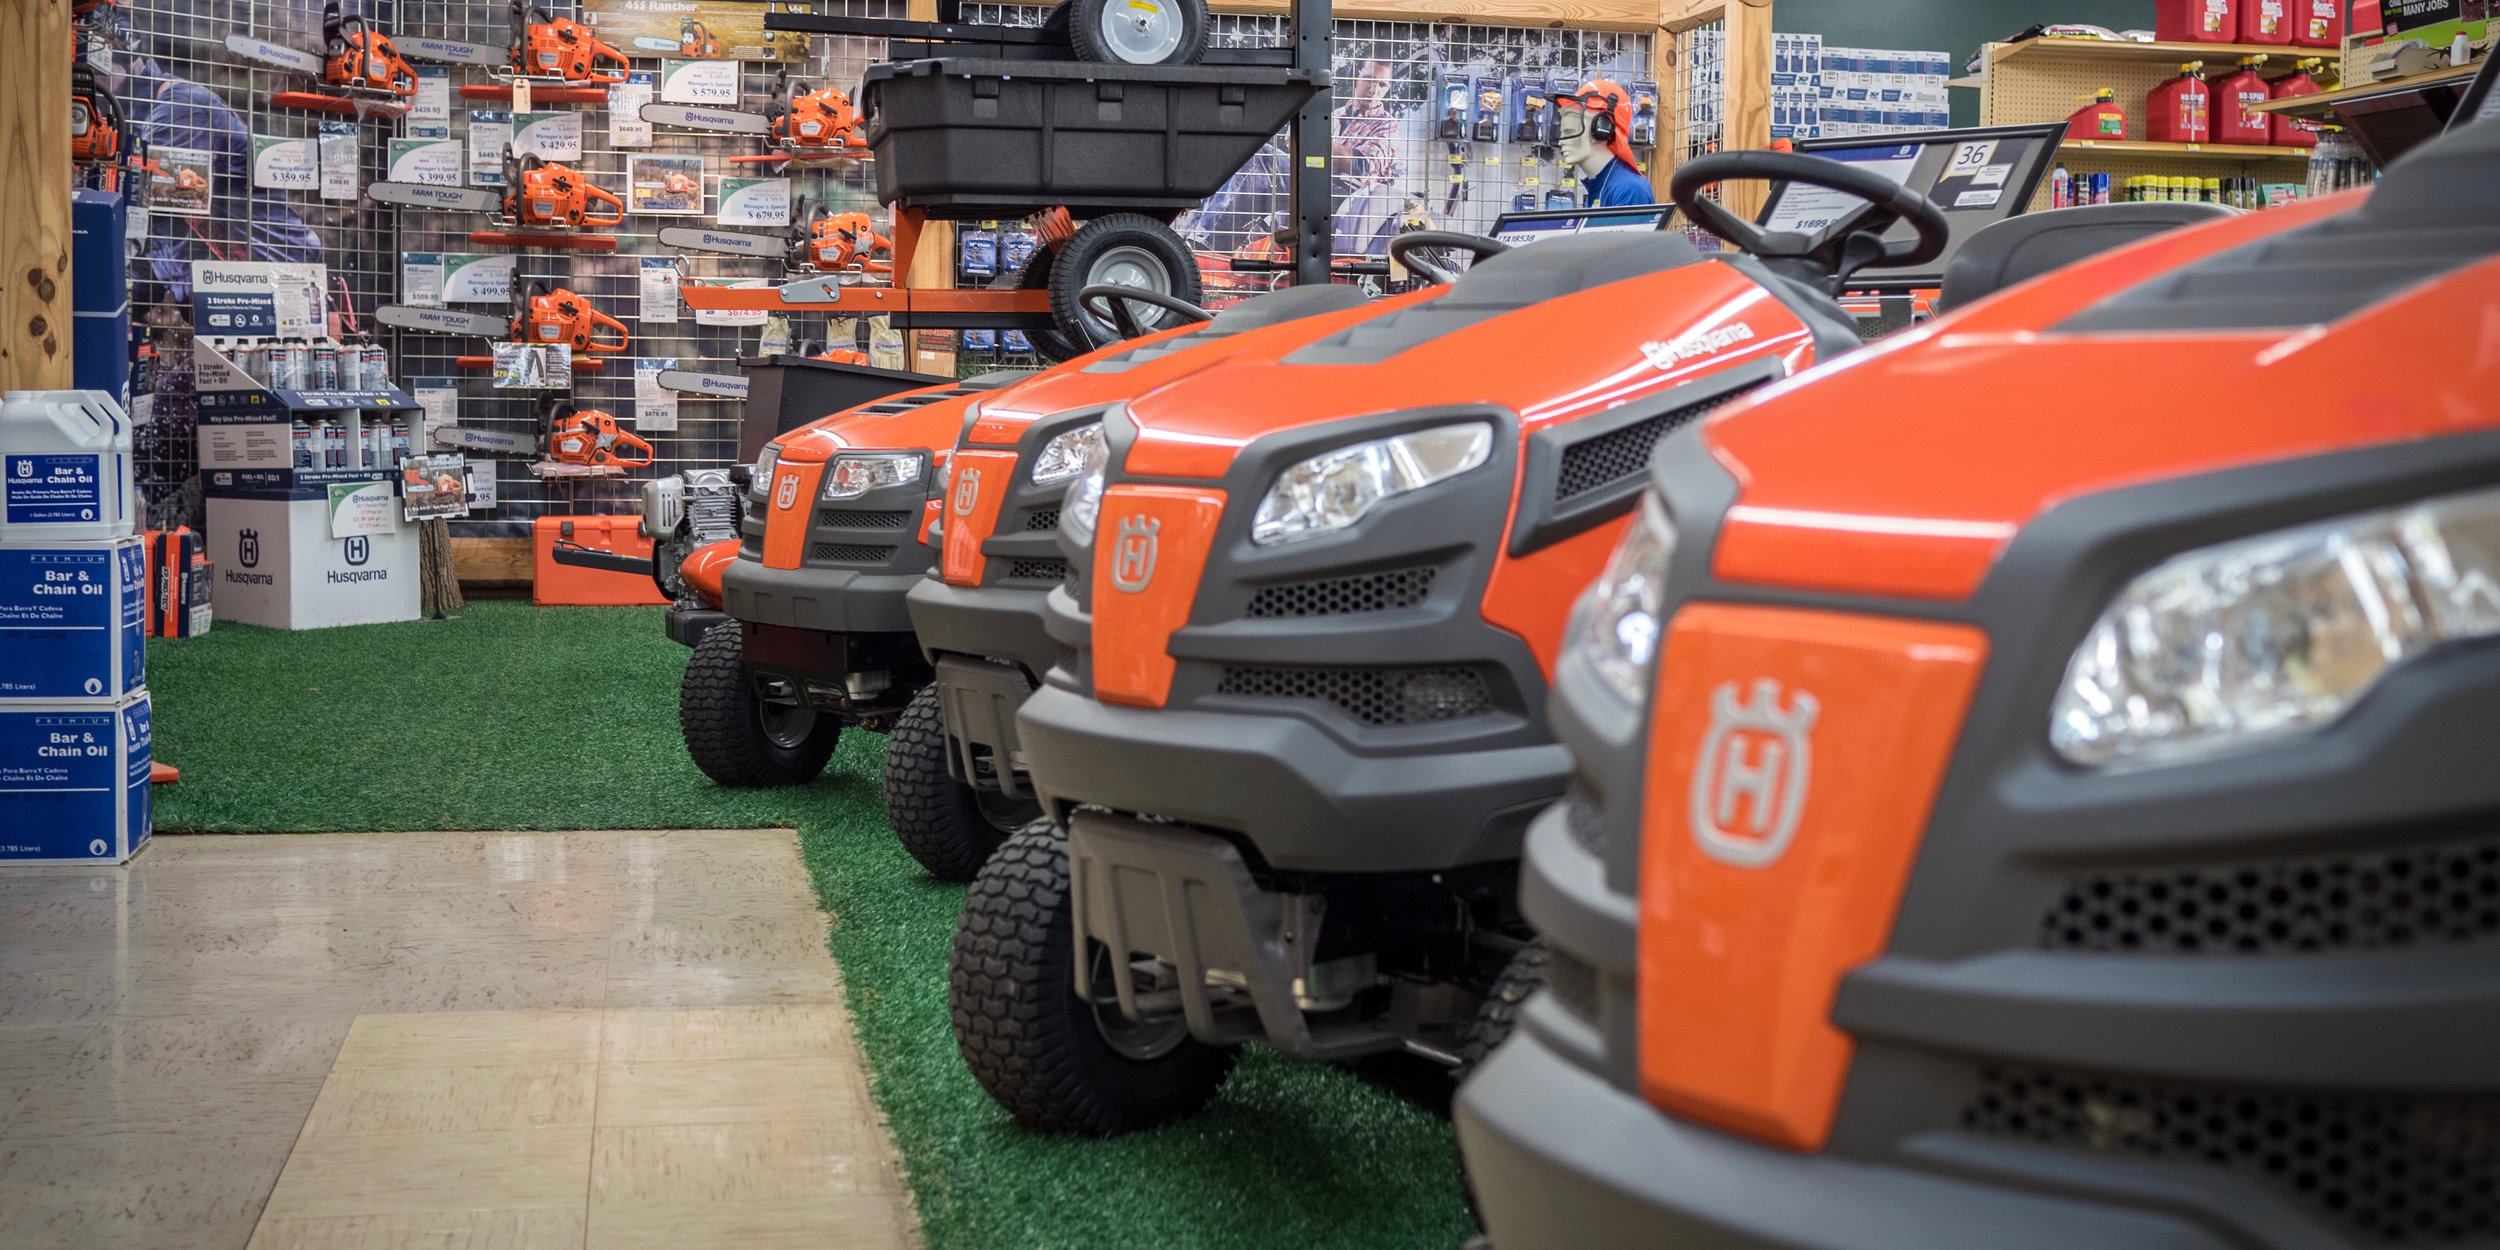 •Whether you are a new homeowner, or just looking to replace that old mower, rest assured we have options for you to choose from. -